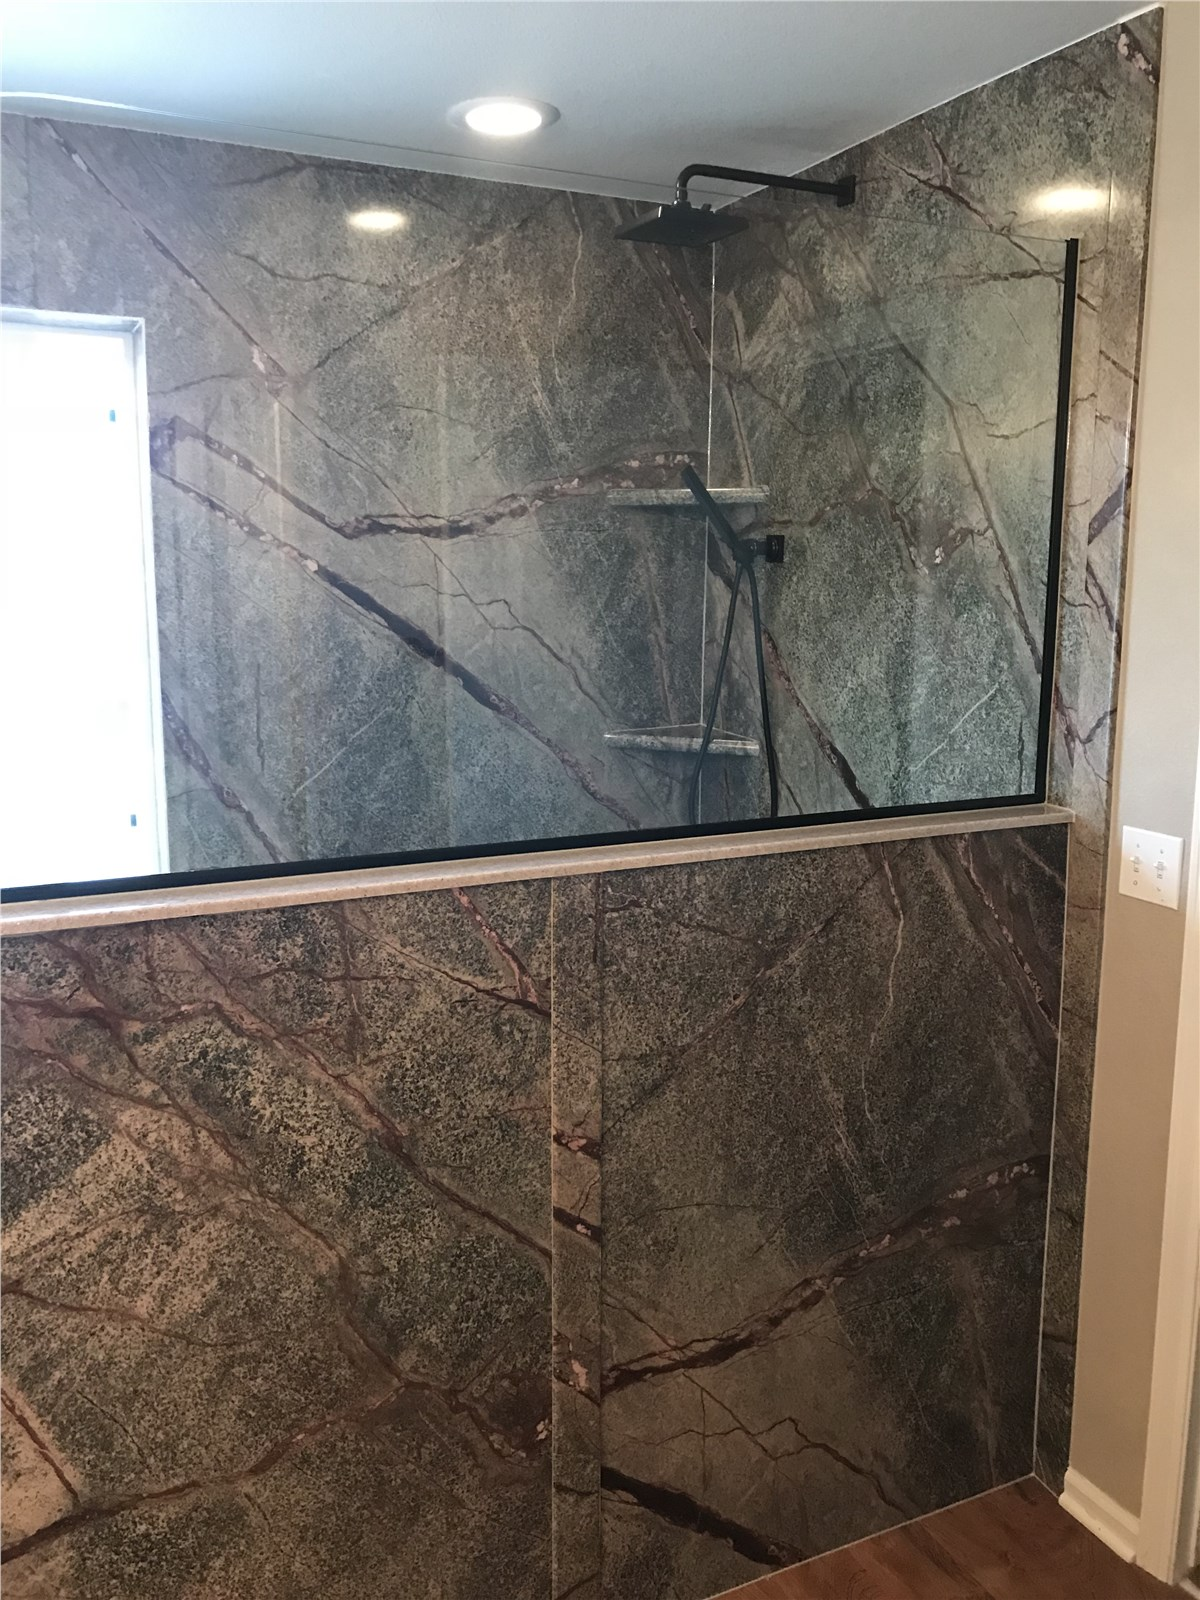 Sensational Shower Remodeling Services In Colorado Springs Co Download Free Architecture Designs Scobabritishbridgeorg